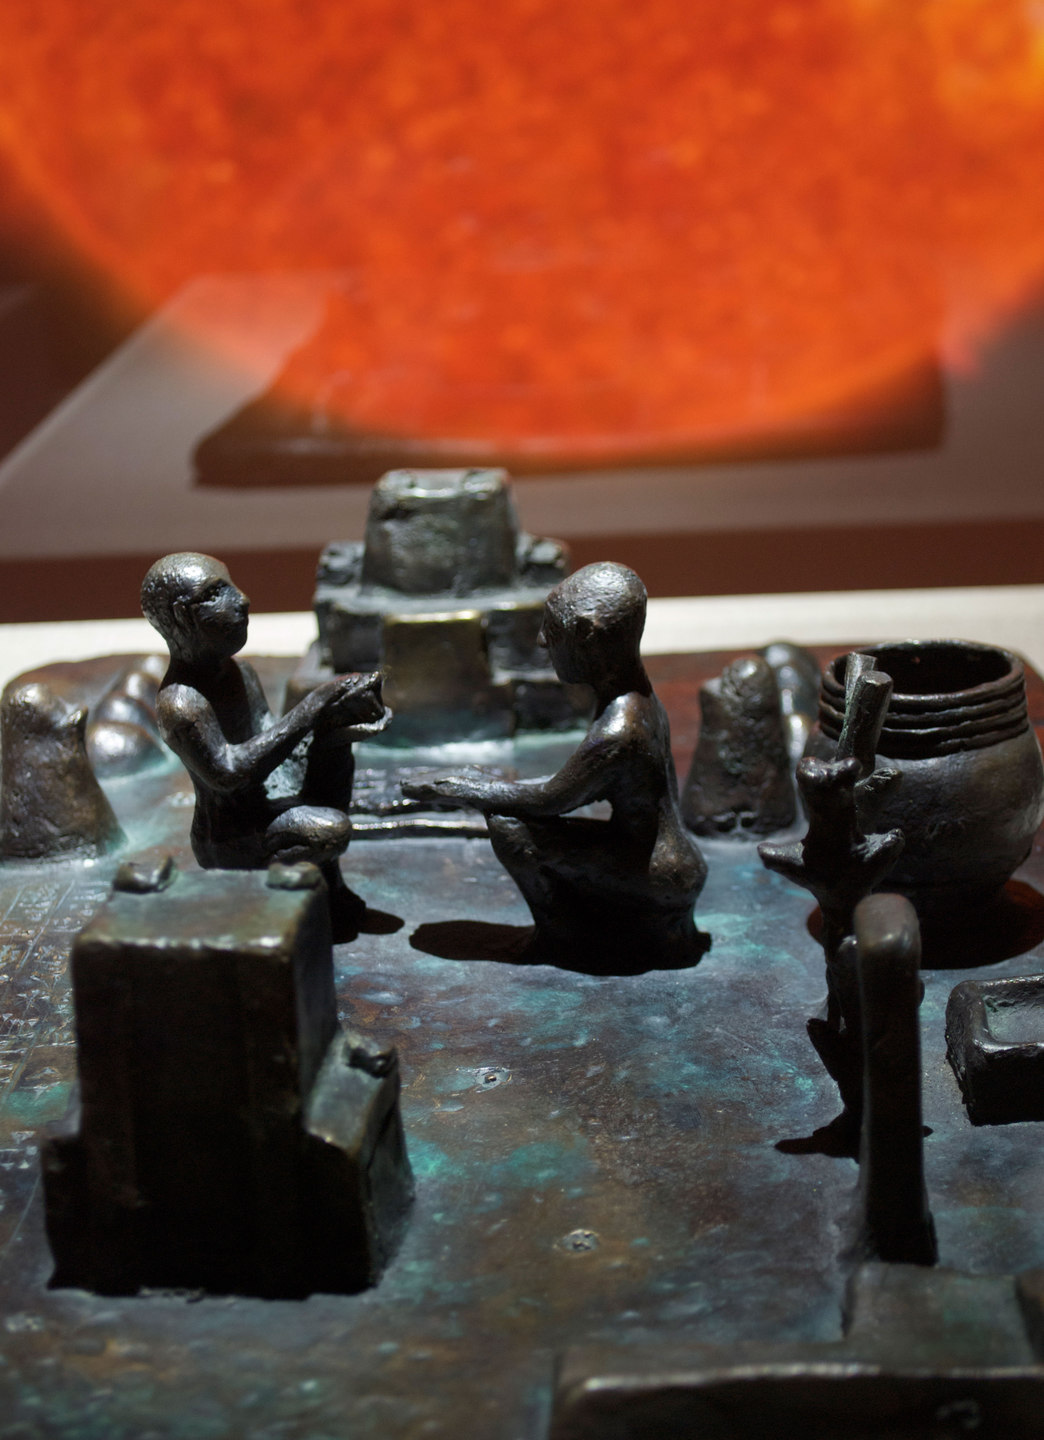 Mark Aerial Waller, Detail of 'Reconstruction of a 12th century BC Elamite antiquity, Sit Shamsi', 2012, bronze,(w. 53 cm x h. 12 cm x d. 35 cm) Cell Project Space